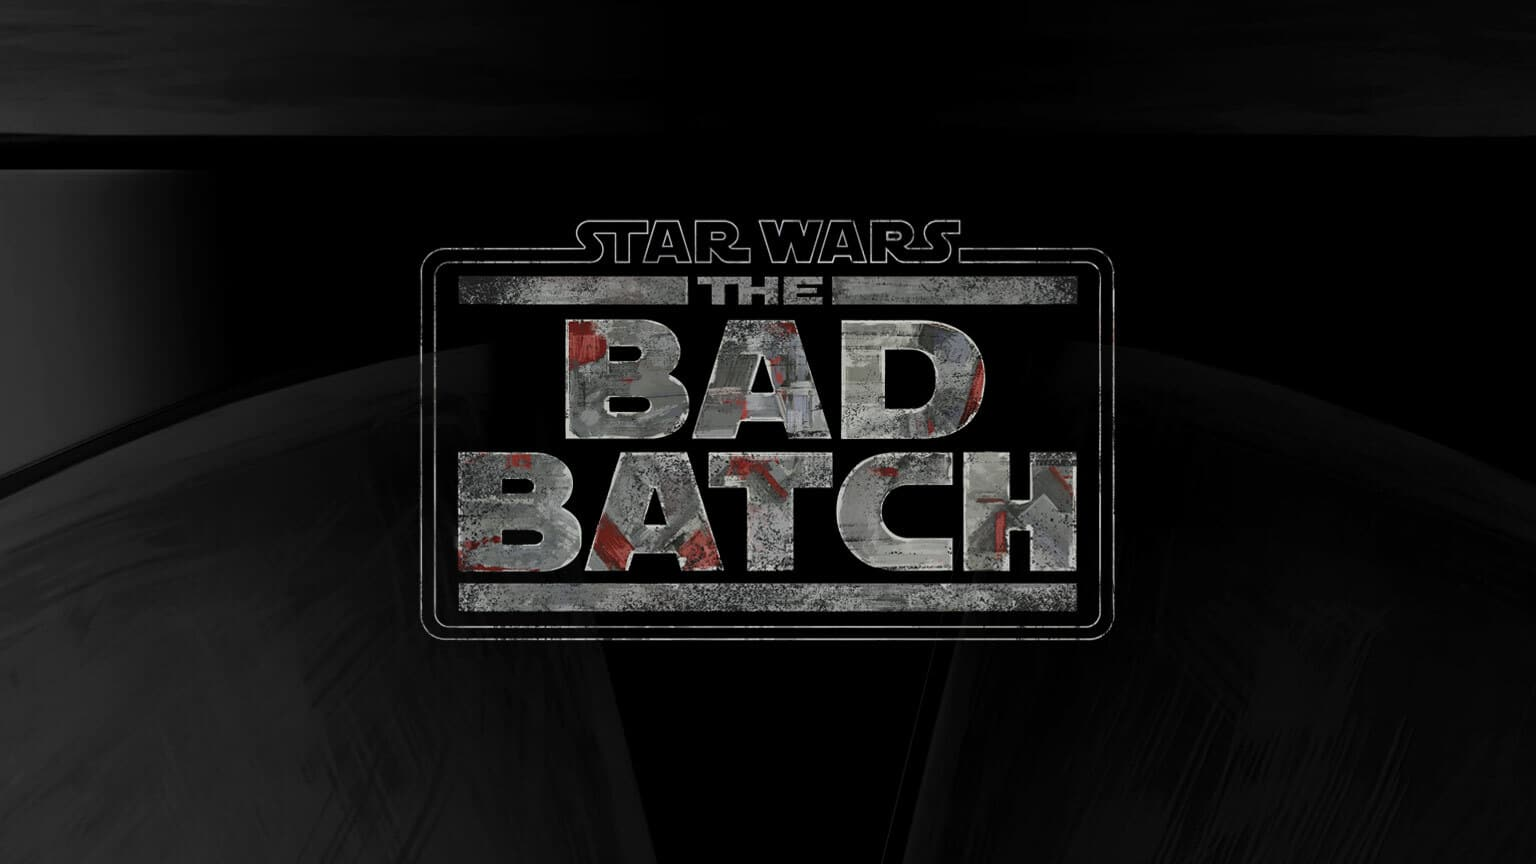 Star Wars: The Bad Batch Animated Series to Debut on Disney+ in 2021